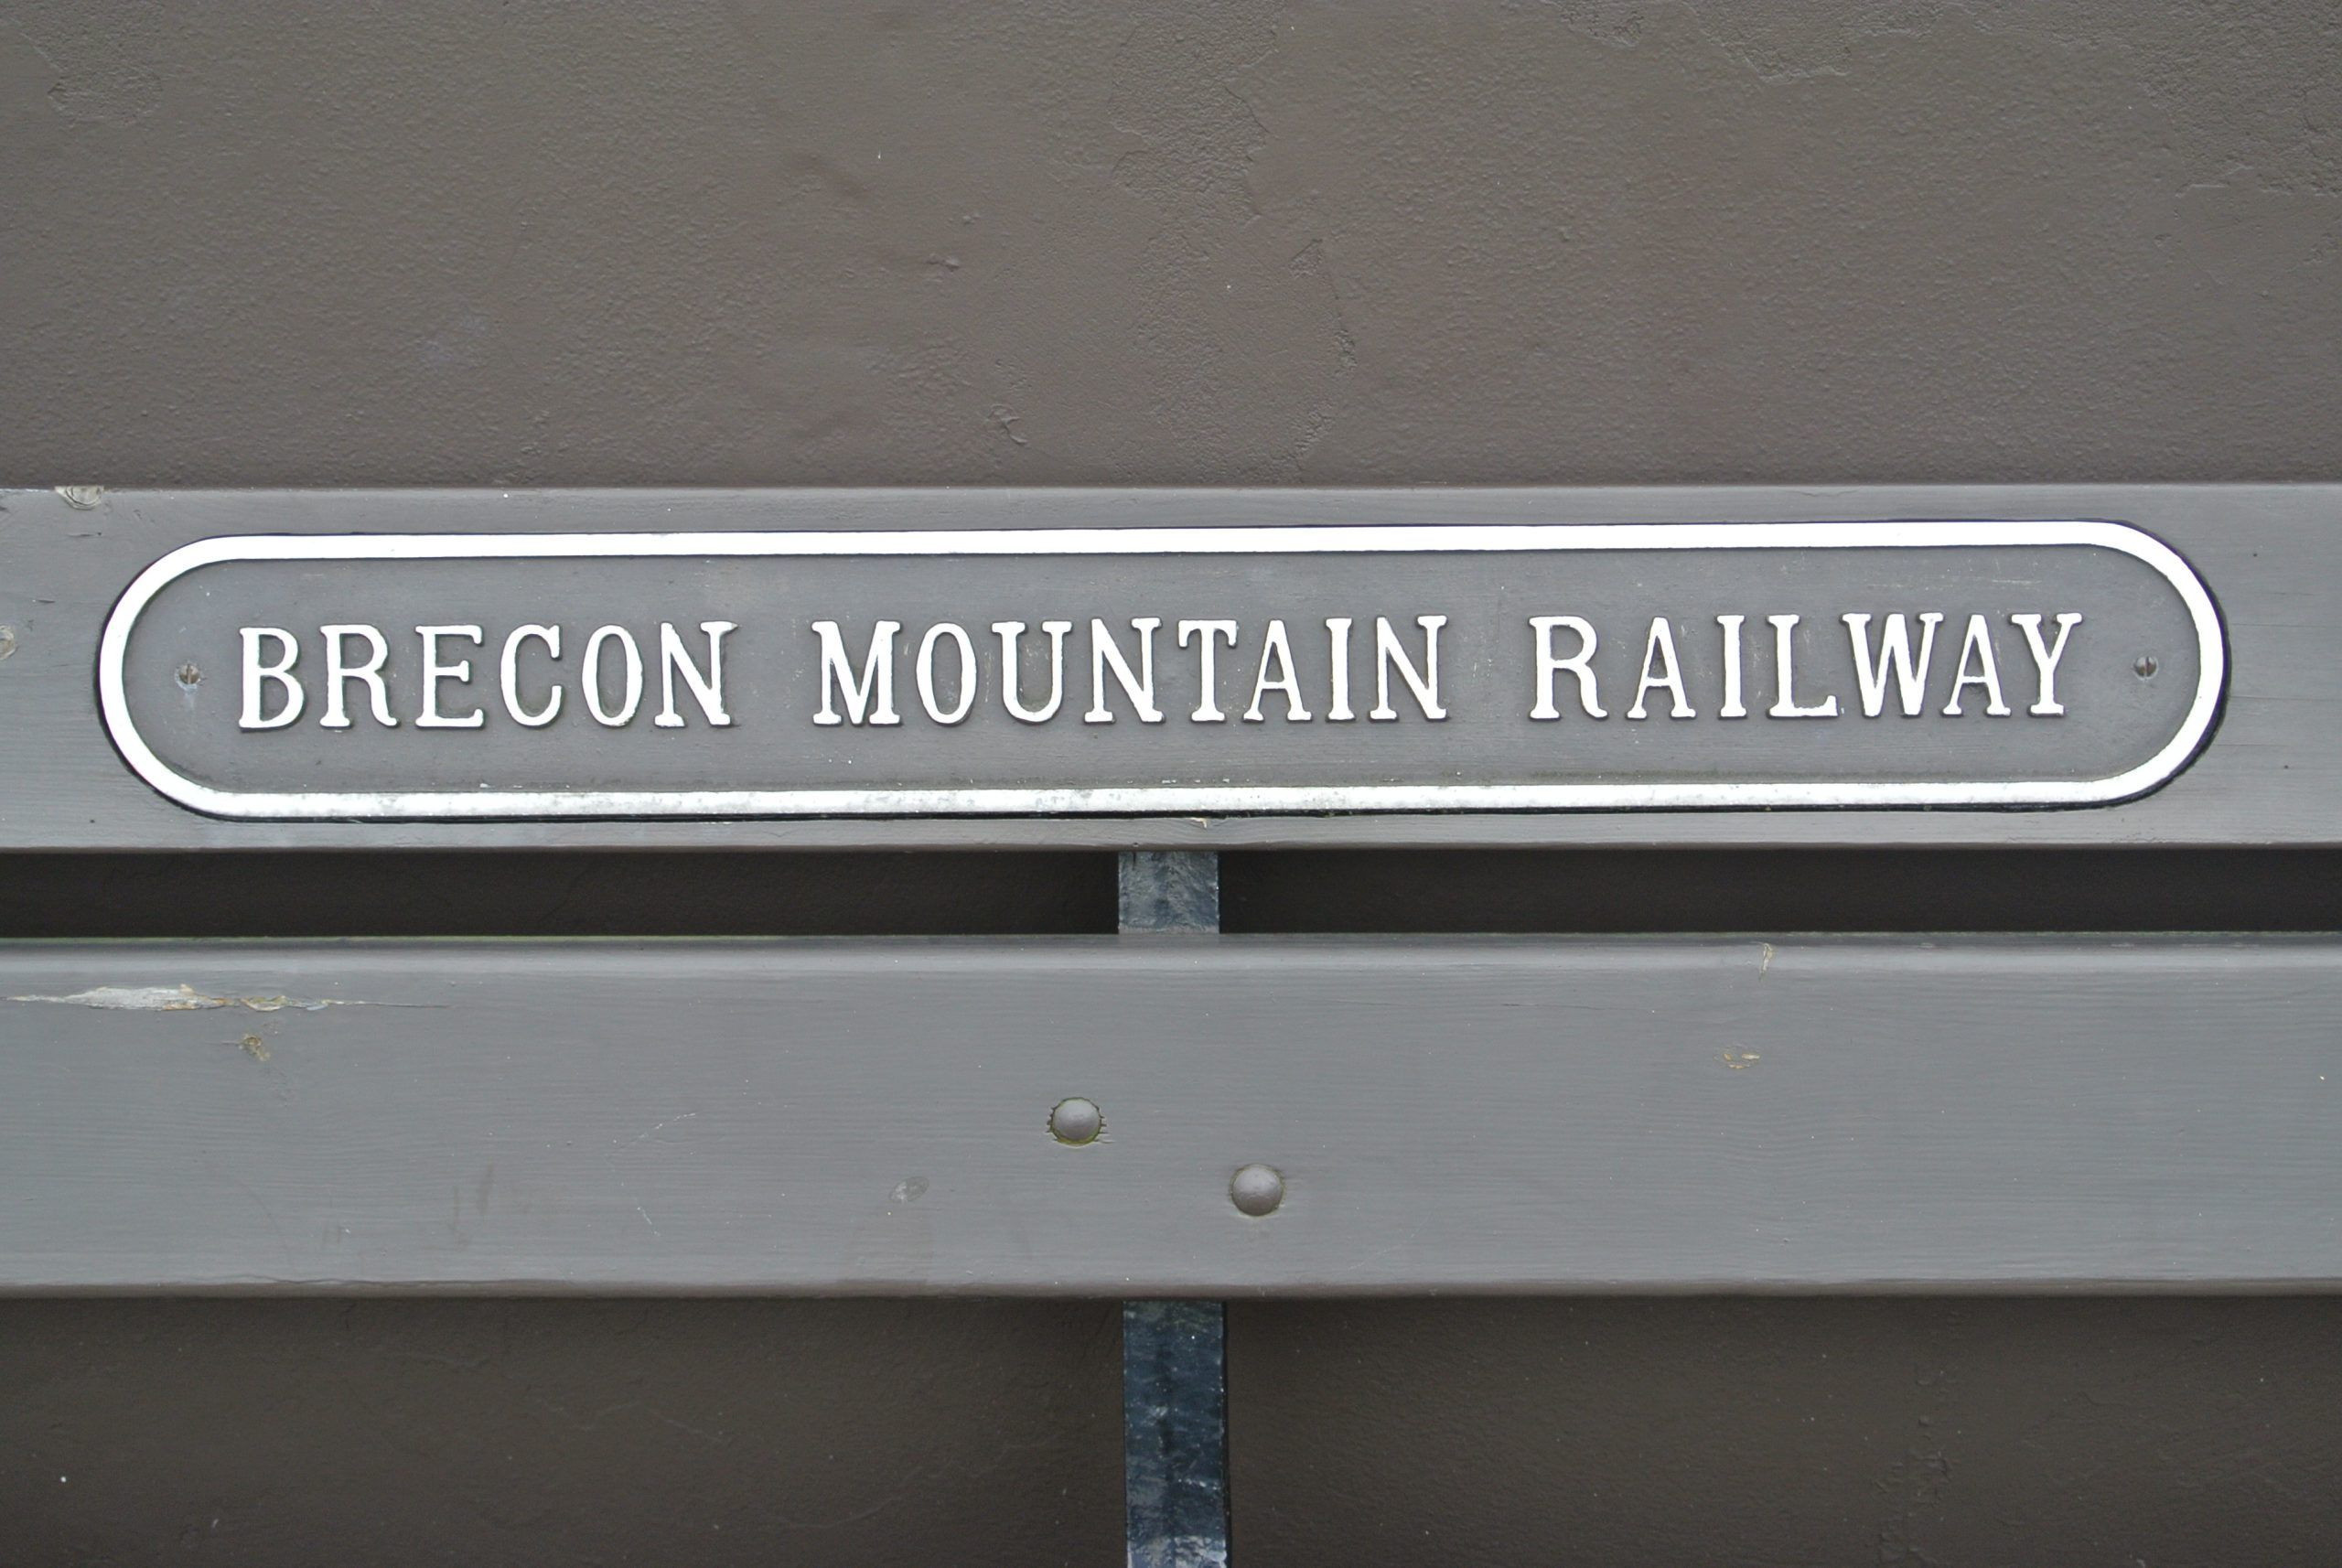 Brecon Mountain Railway photos by juliamaud